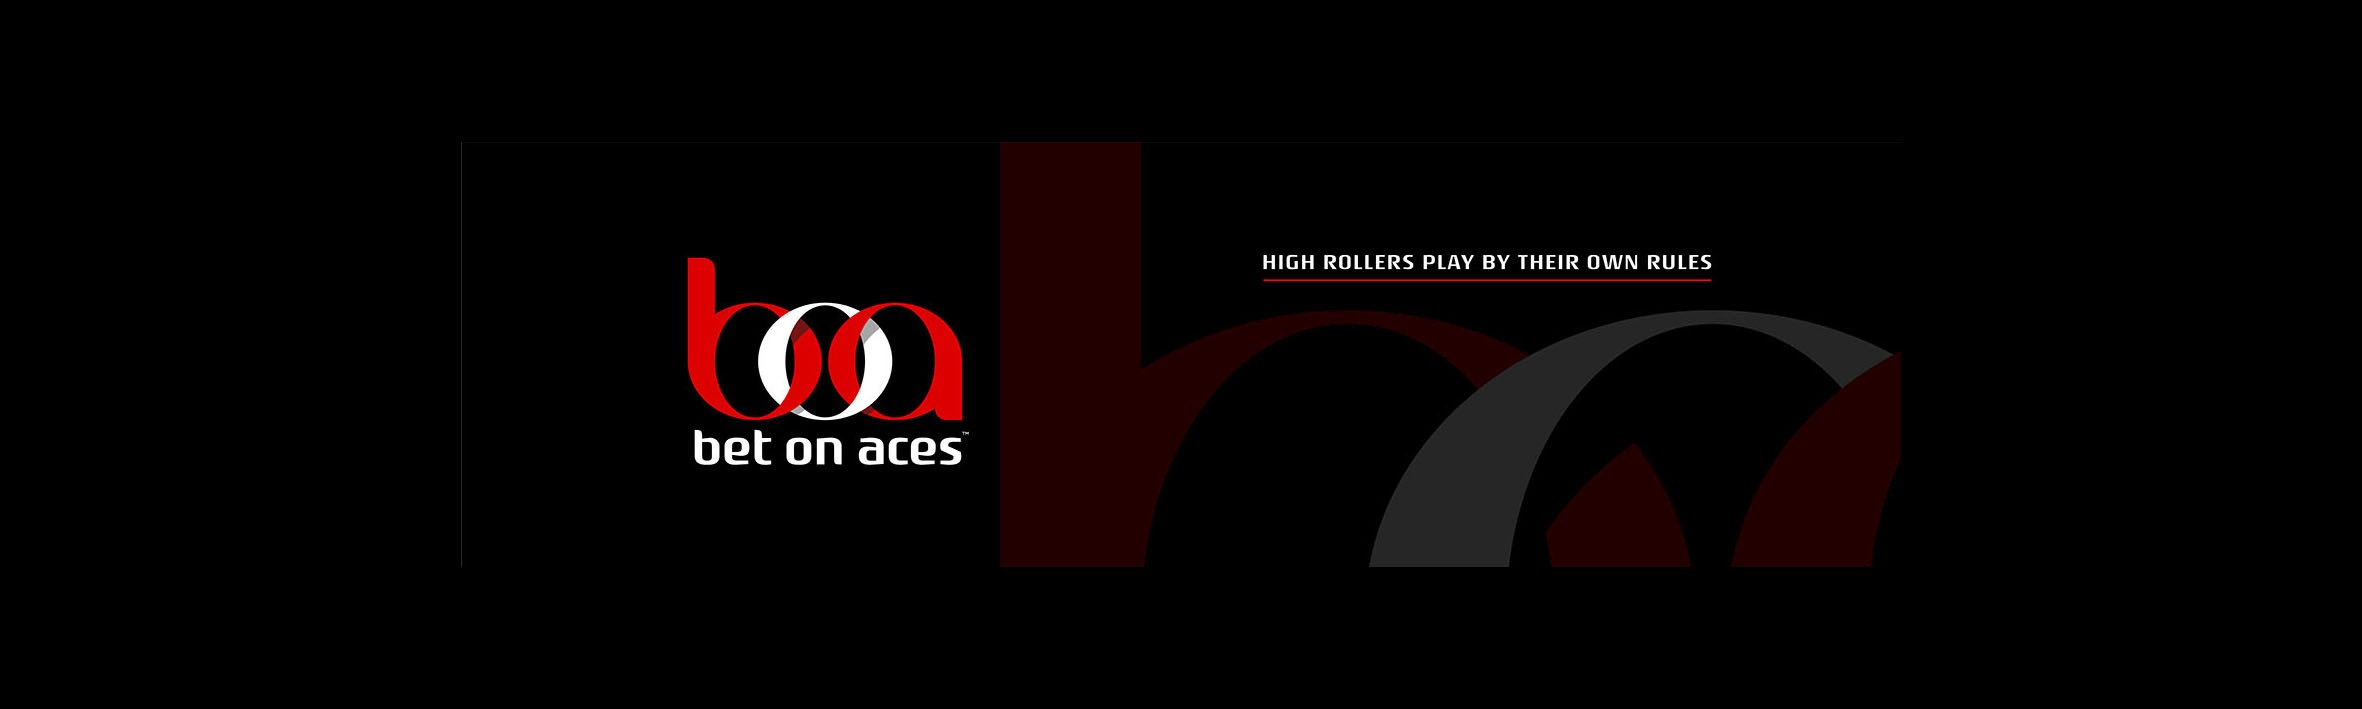 Bet on aces pga 2021 betting odds